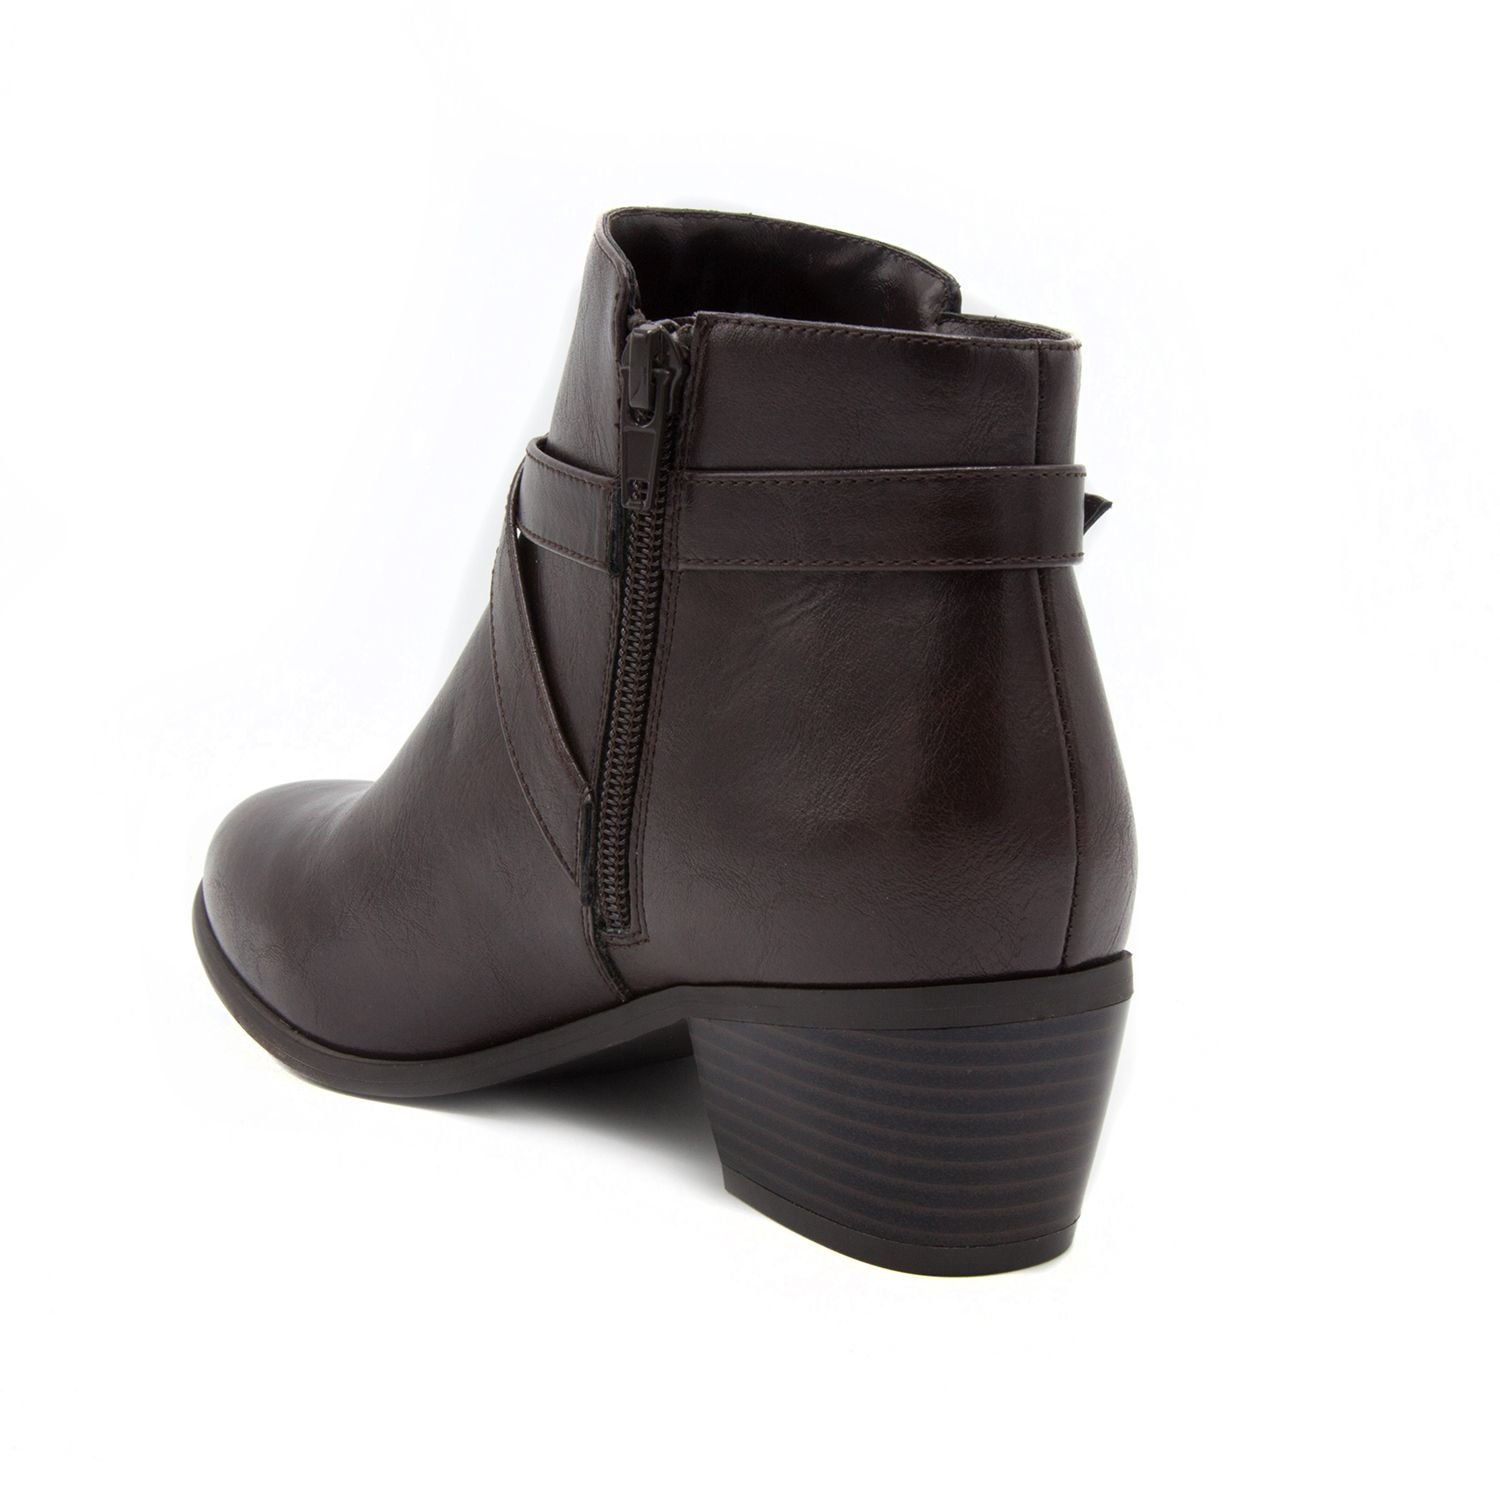 acd8a4aff01 London Fog Boots - Shoes